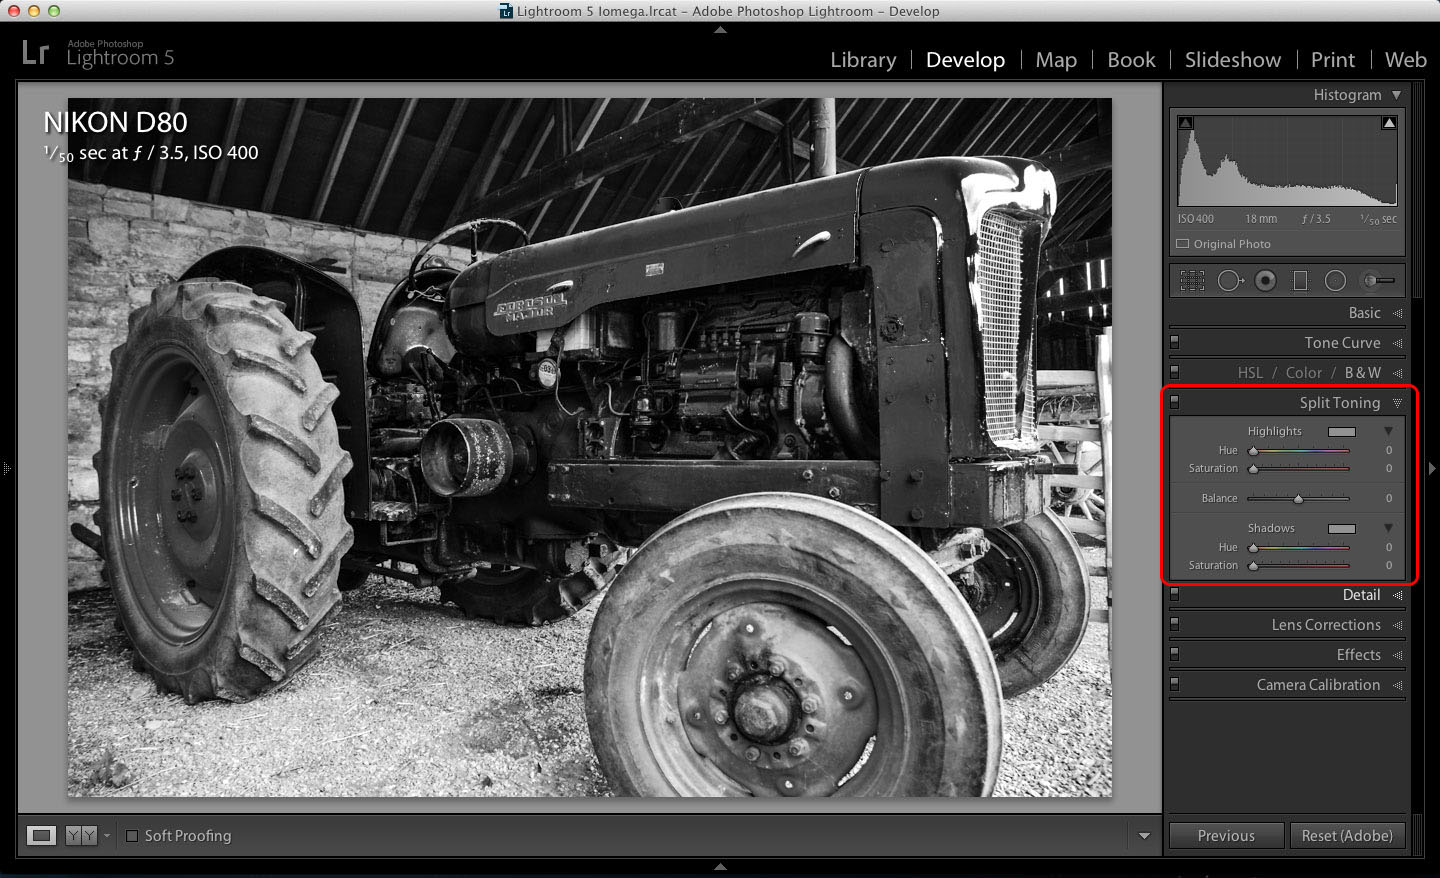 Lightroom Split Toning tools